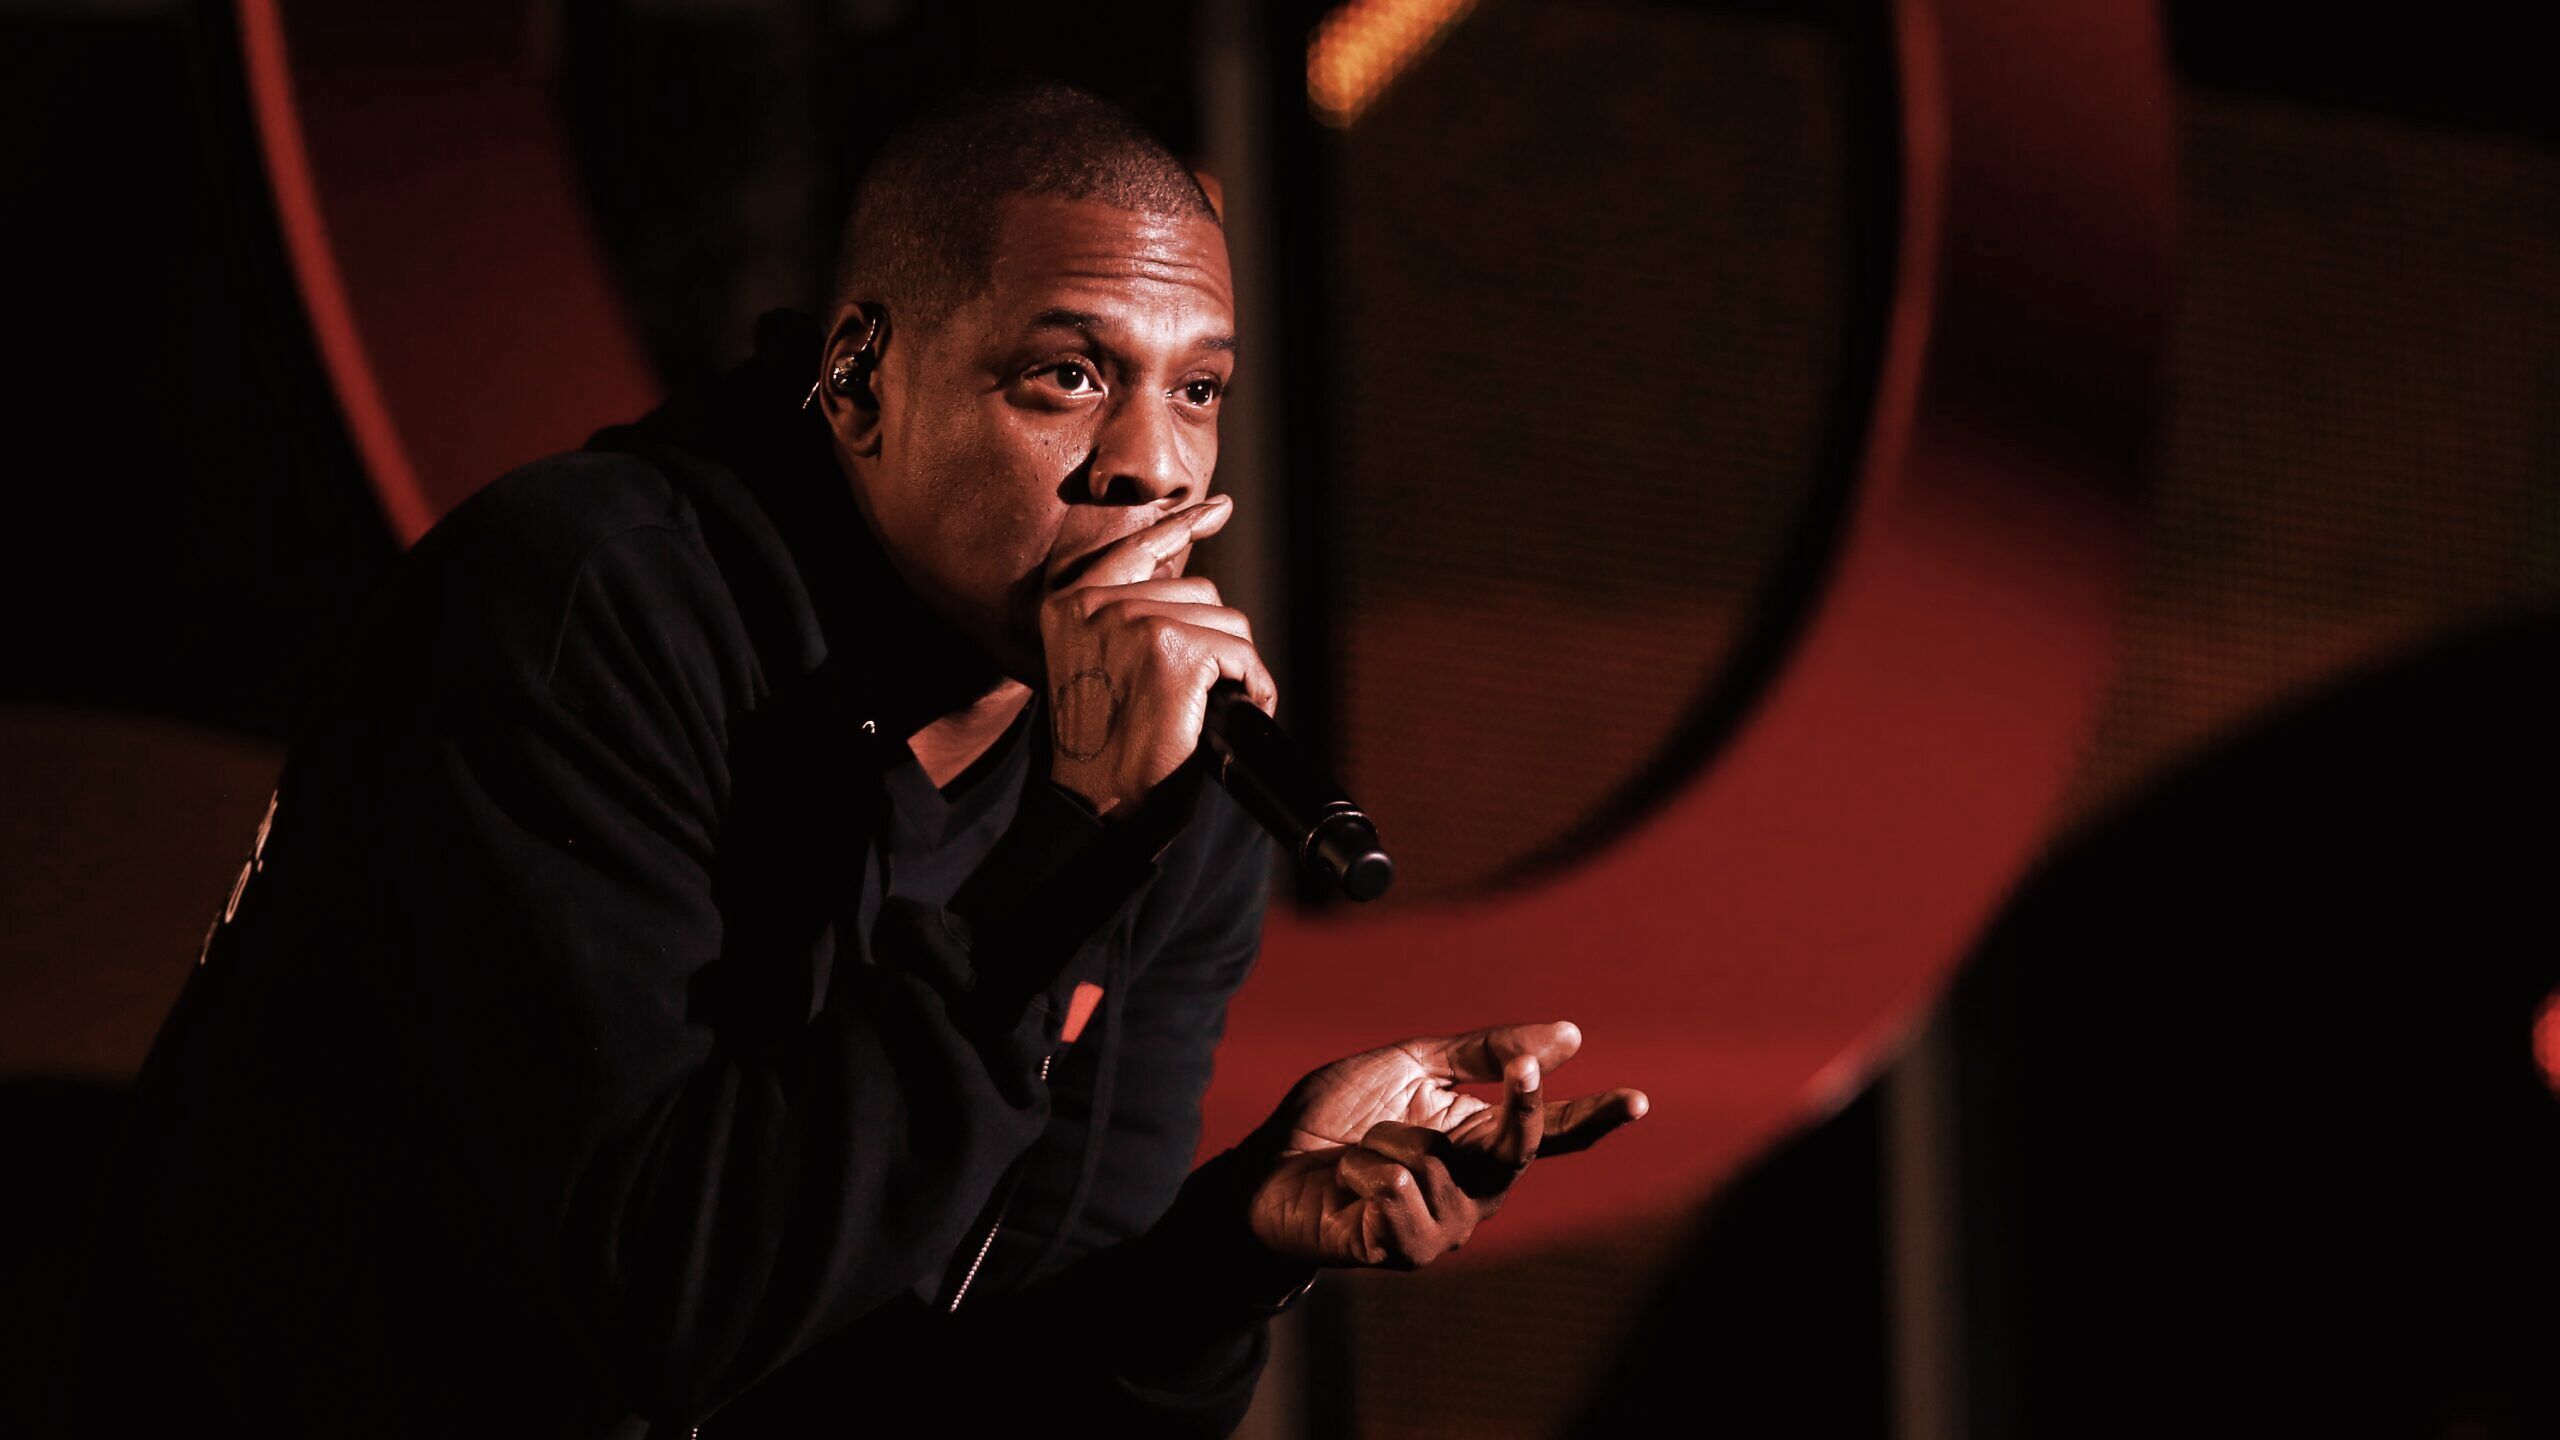 Roc-A-Fella Records Sues Co-Founder Over NFT of Jay-Z's 'Reasonable Doubt'